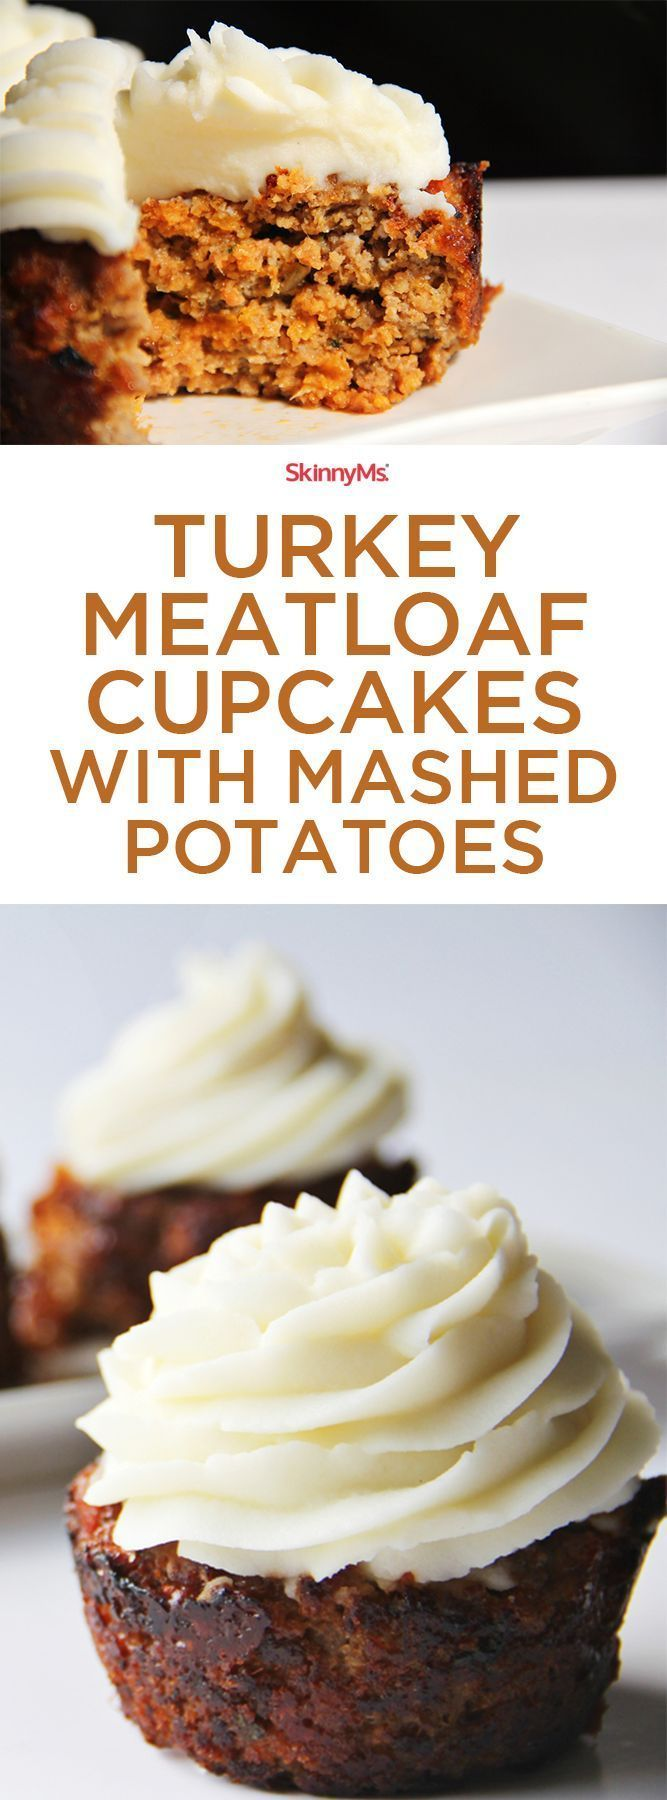 turkey meatloaf cupcakes with mashed potatoes meatloaf cupcakes turkey ...